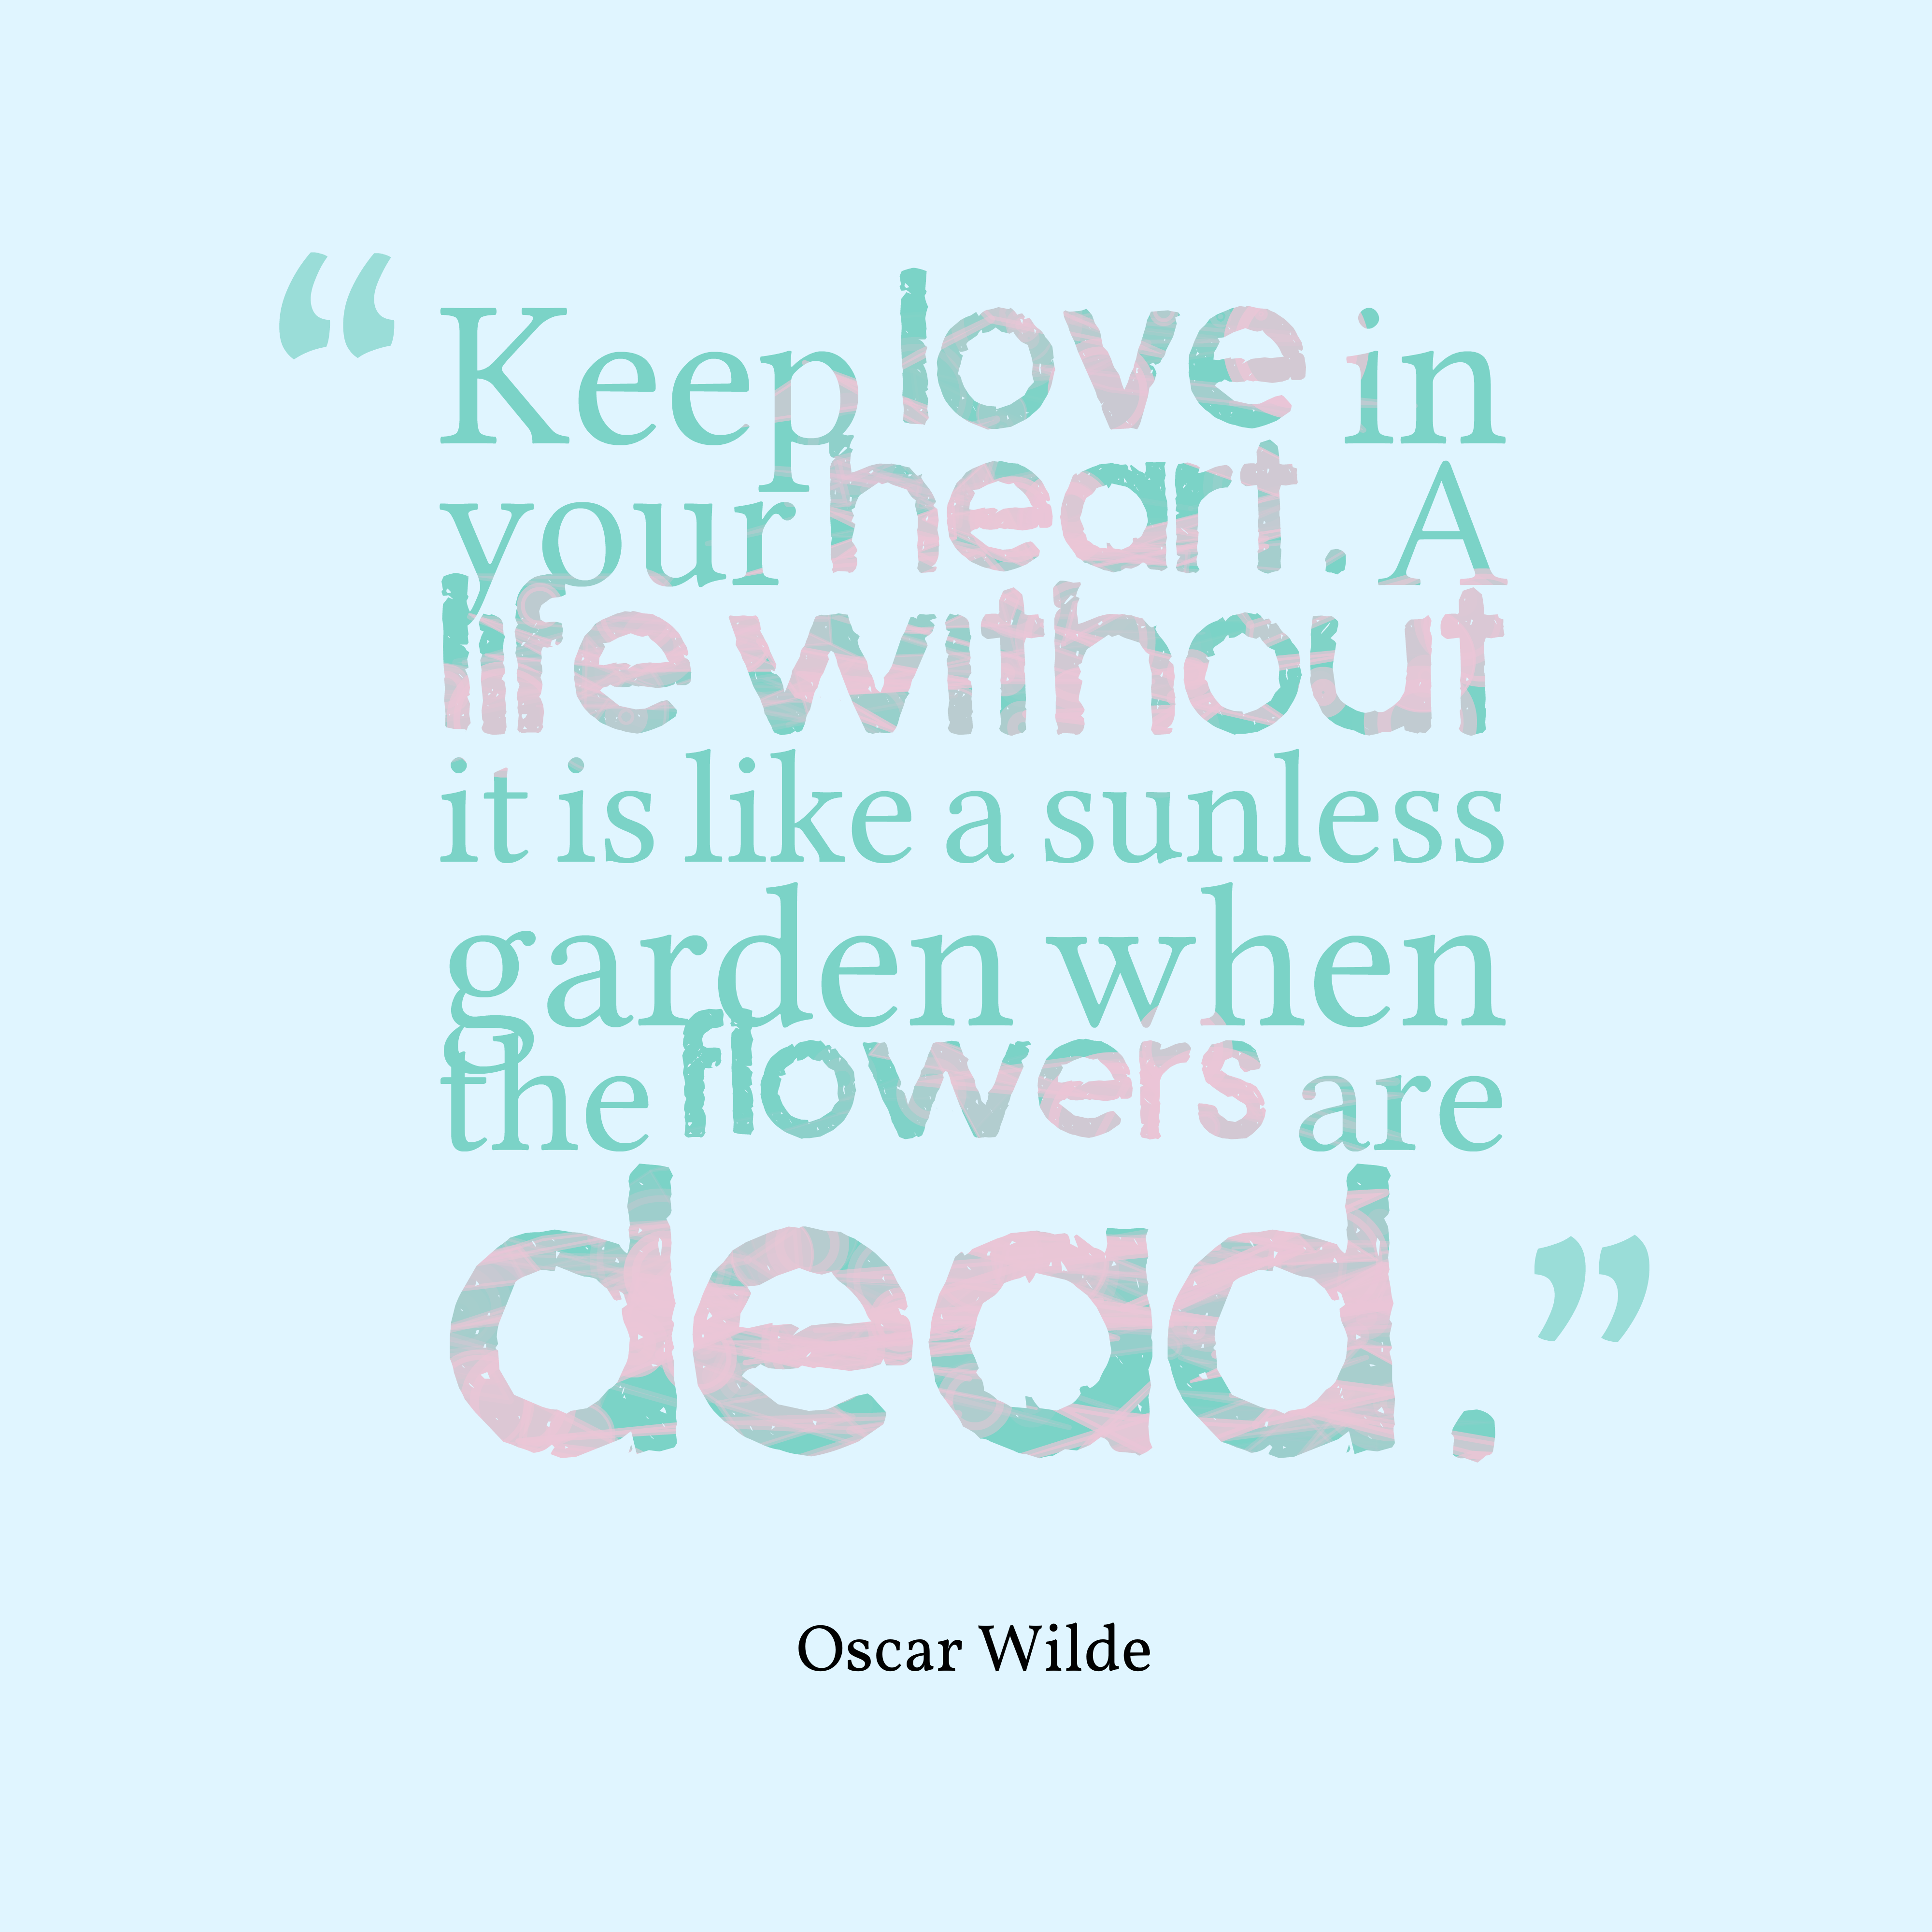 Quotes About Flowers Oscar Wilde : Download high resolution quotes picture maker from oscar